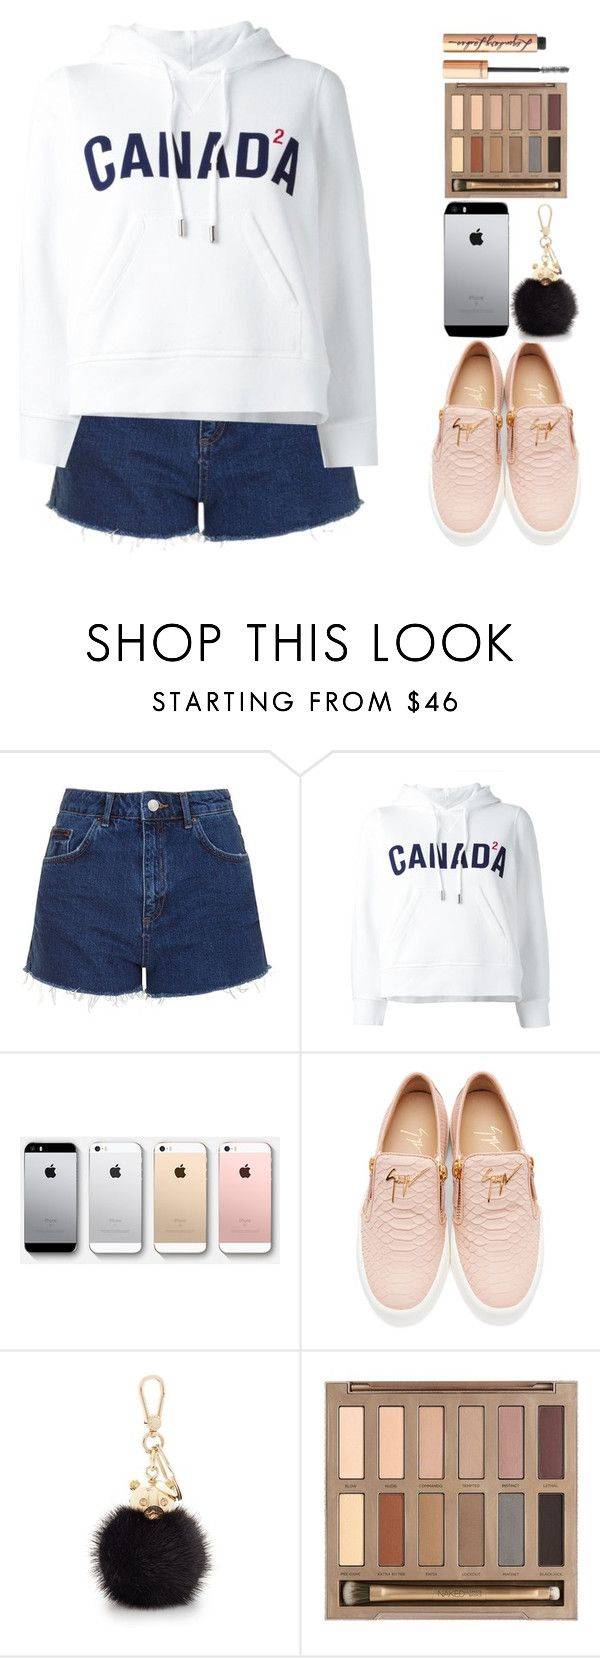 """Canada!!!"" by lipsy-look ❤ liked on Polyvore featuring Topshop, Dsquared2, Giuseppe Zanotti, Furla, Urban Decay and Charlotte Tilbury"